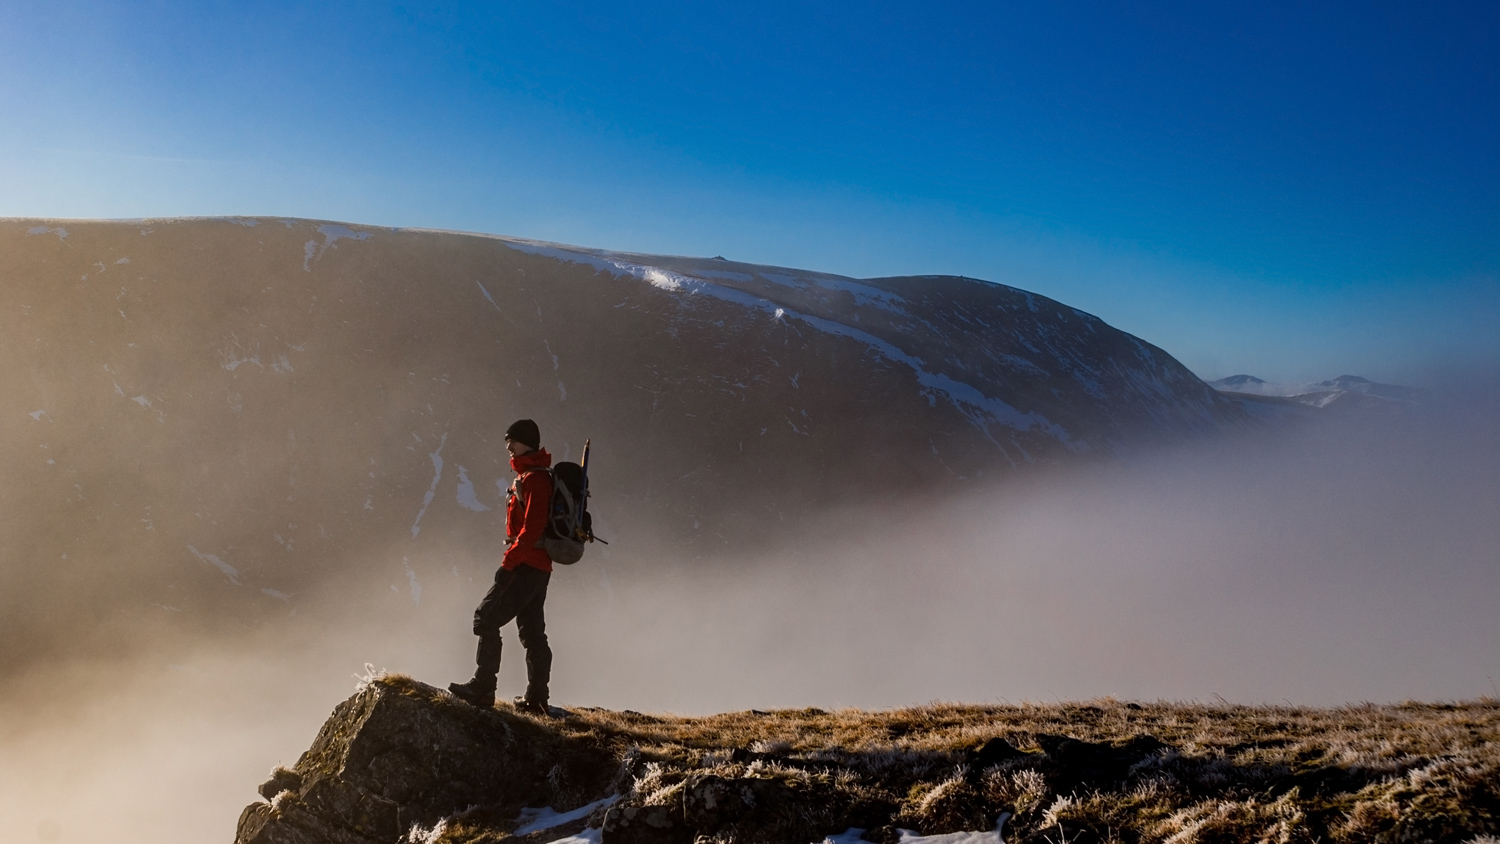 Admiring the views of Coire Ardair with Creag Meagaidh towering above me.